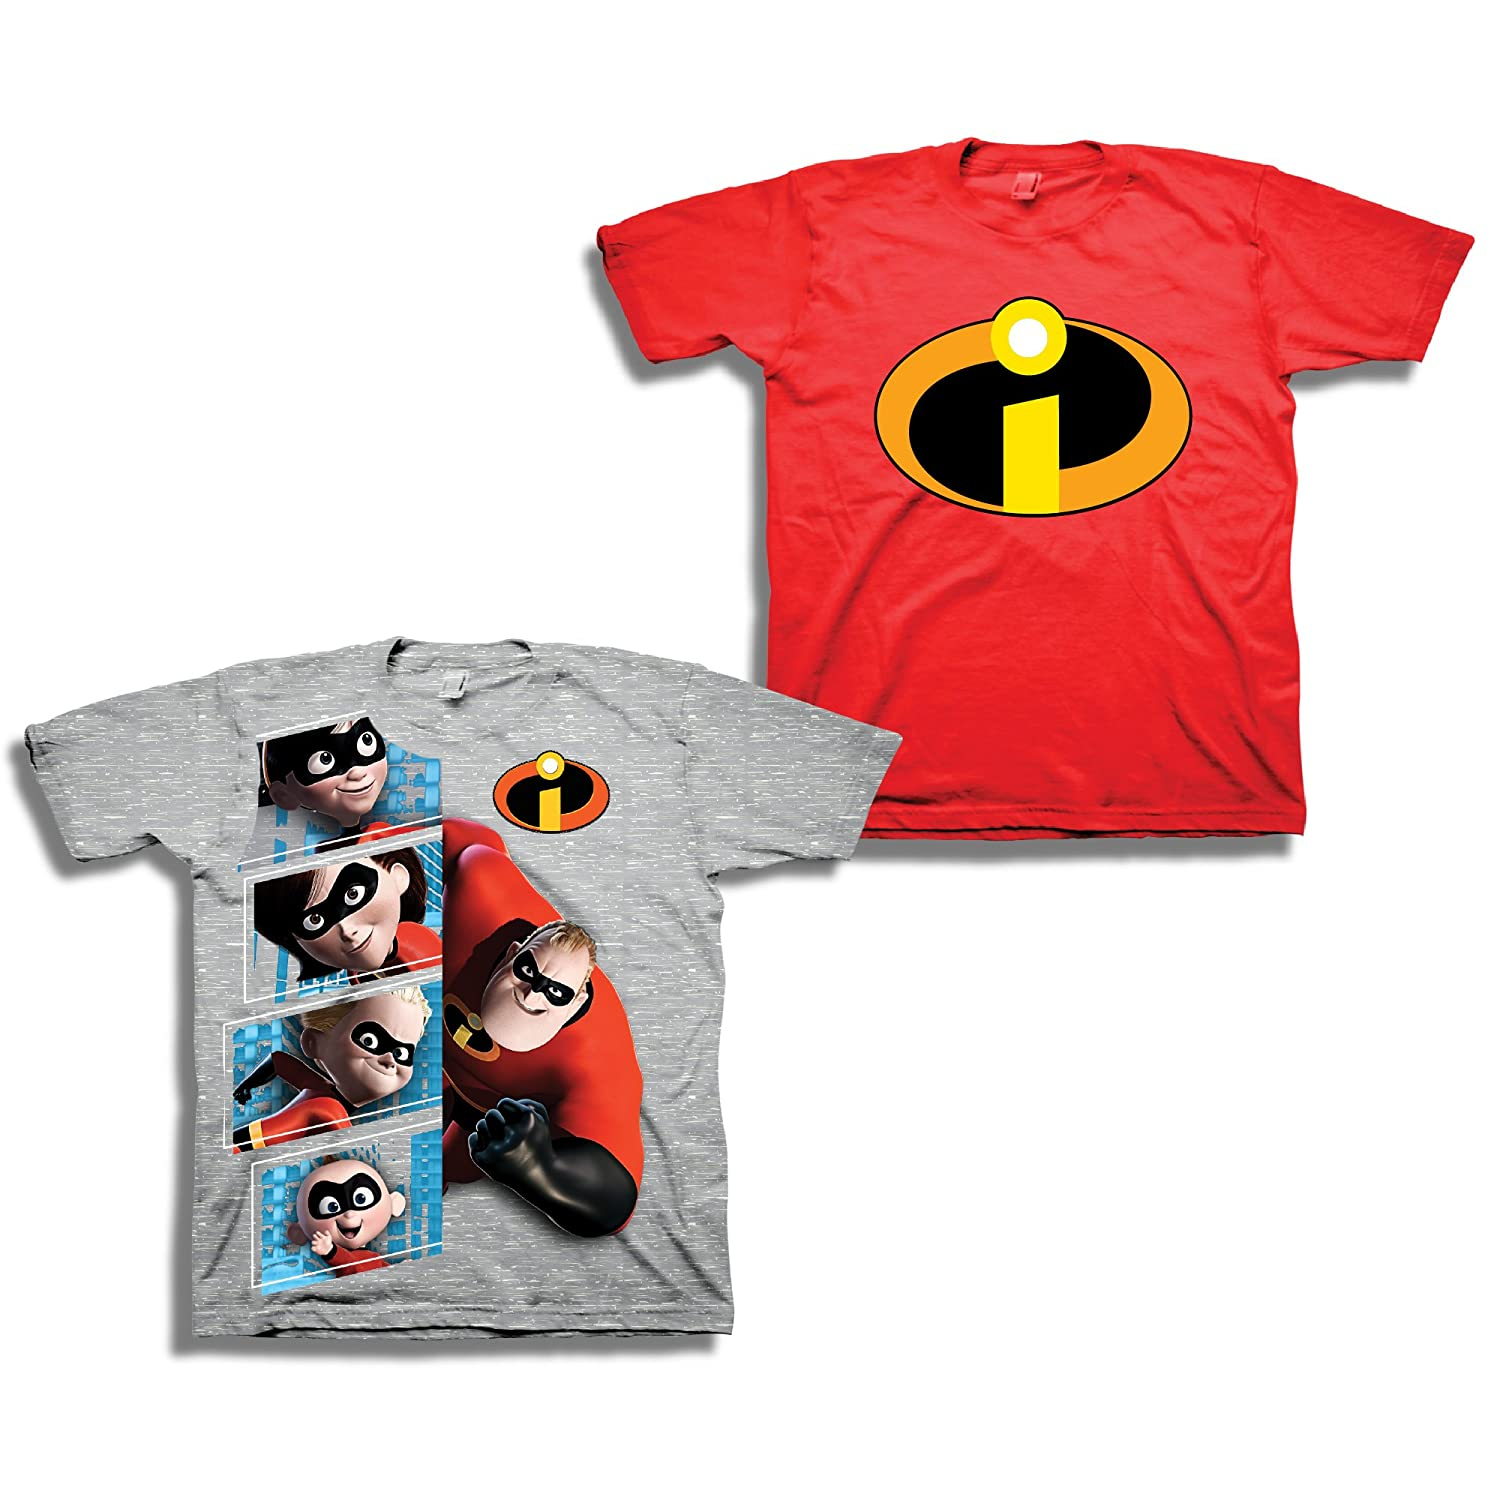 4efb8a3ce Each tee has a colorful print with your favorite Incredibles characters: Mr  Incredible, Jack Jack, and Elastigirl.